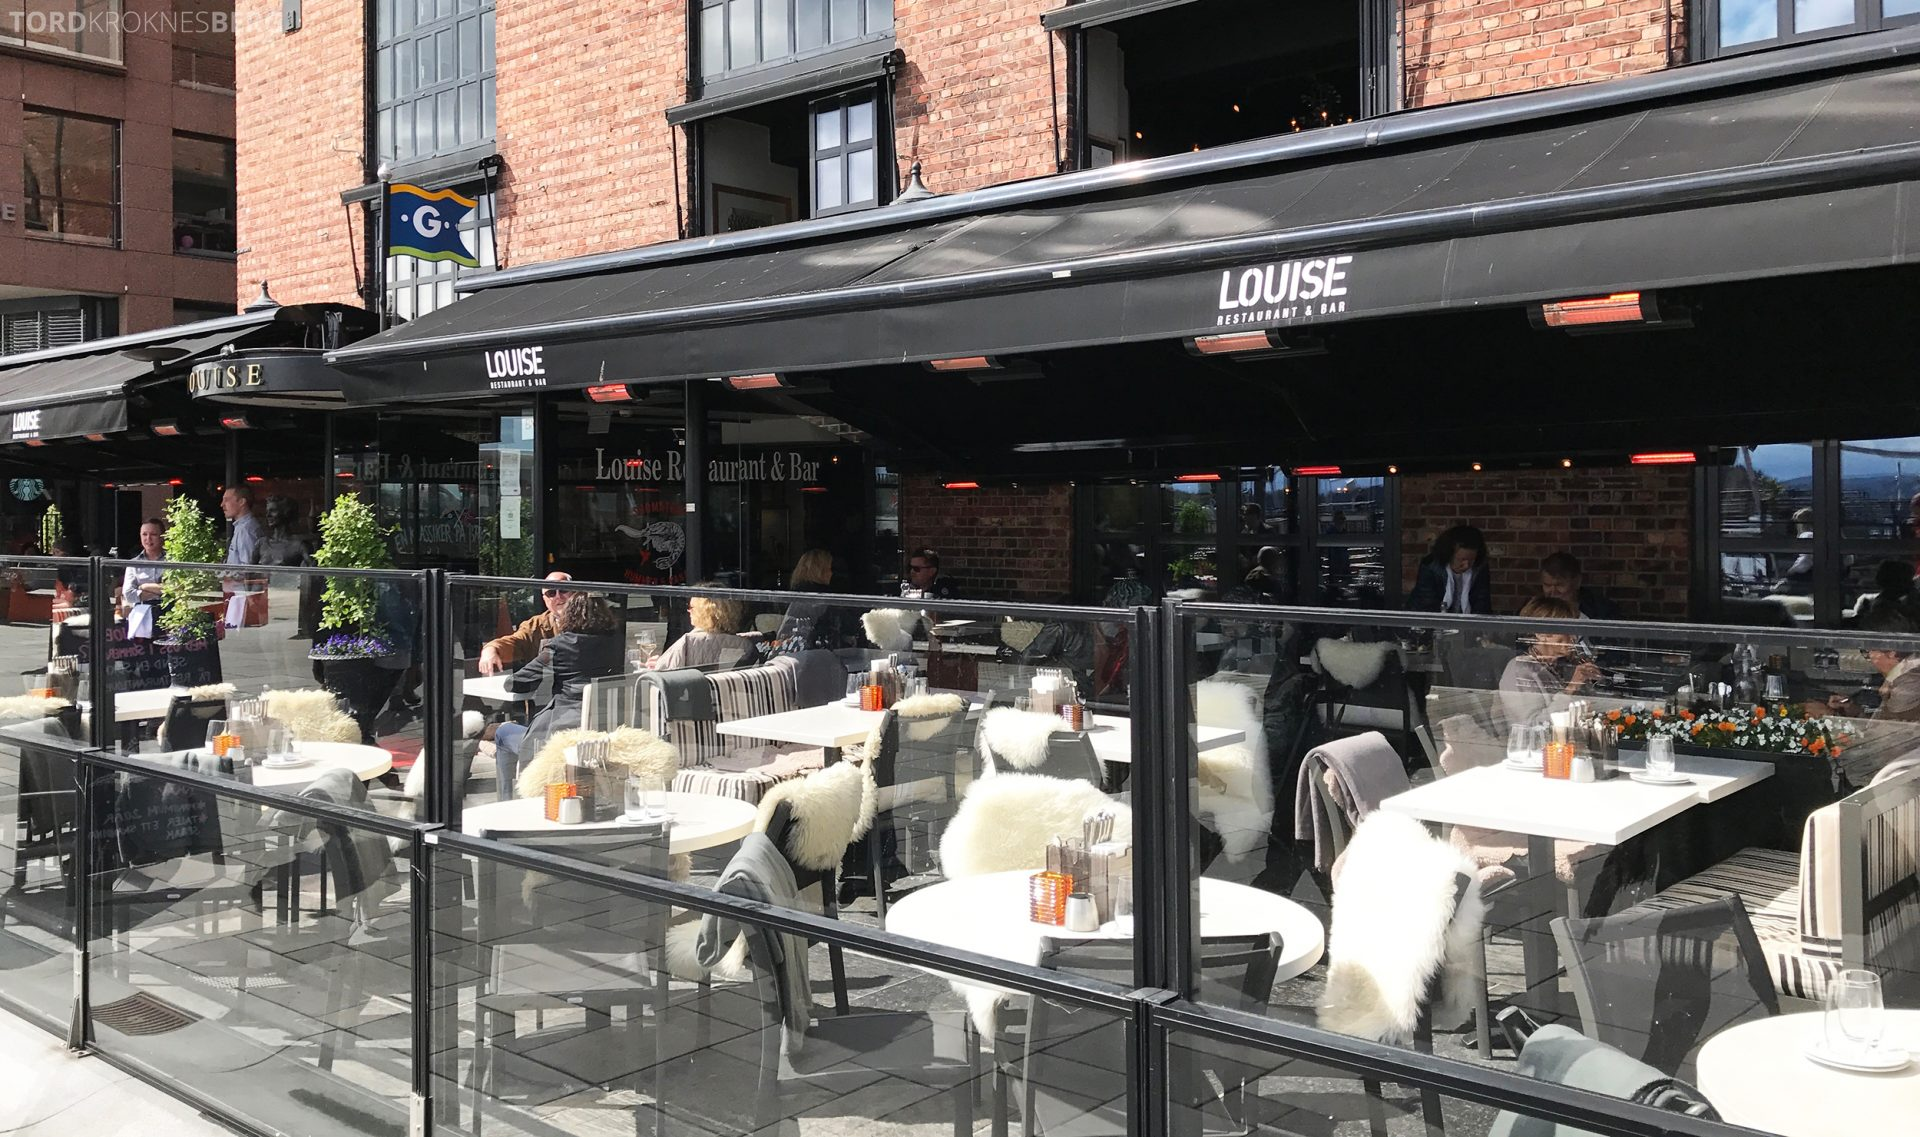 Louise Restaurant Bar Aker Brygge ute